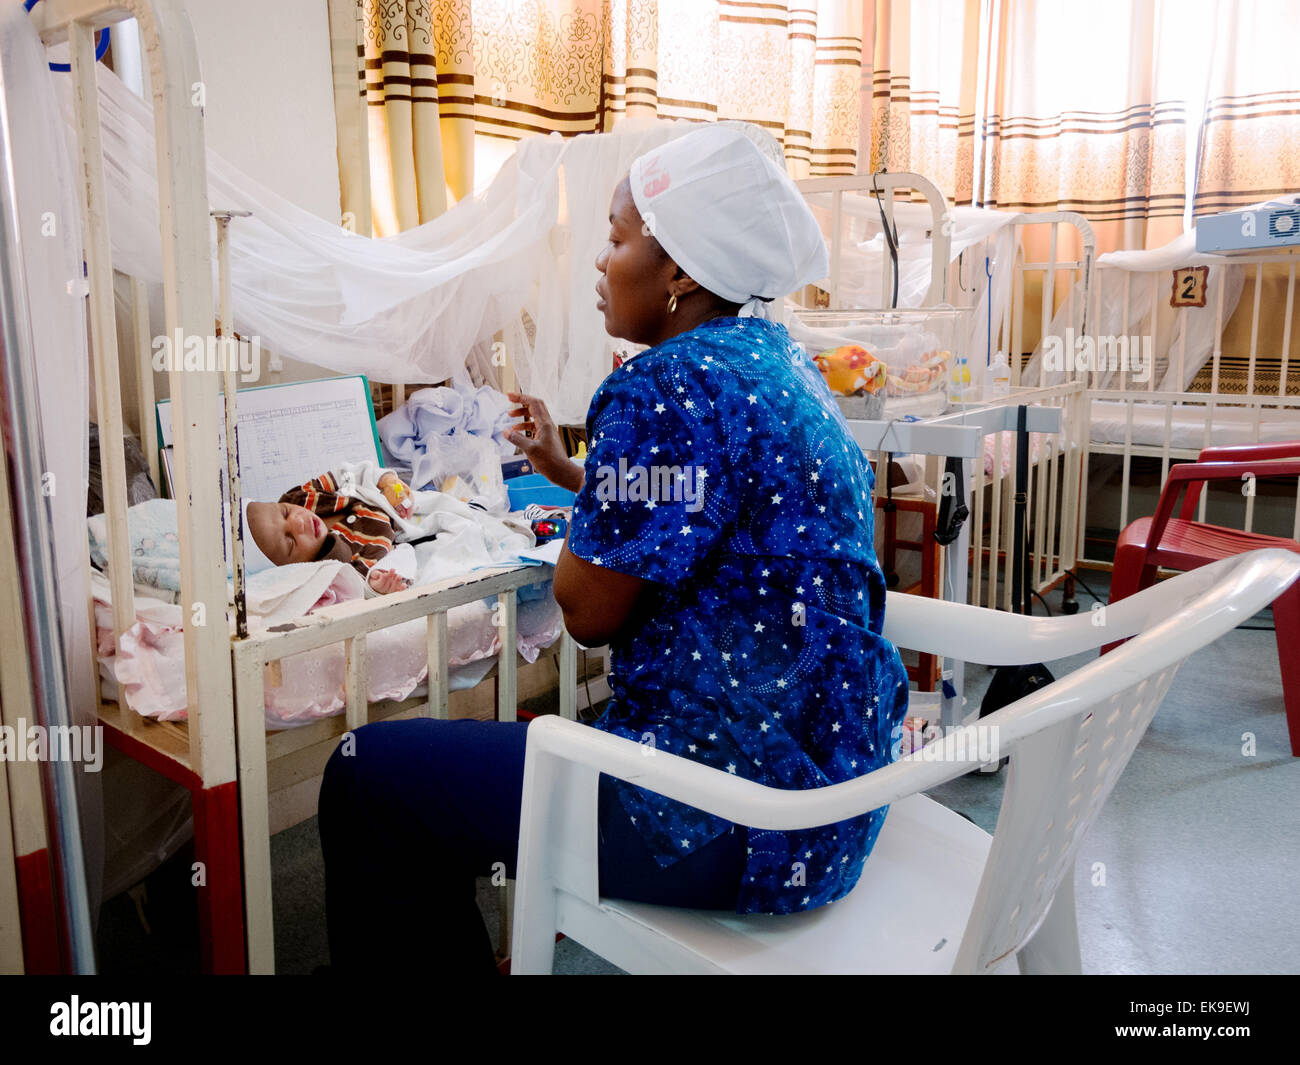 An African nurse nursing a baby in a ward; The Heal Africa charity hospital, Goma, Democratic Republic of Congo - Stock Image